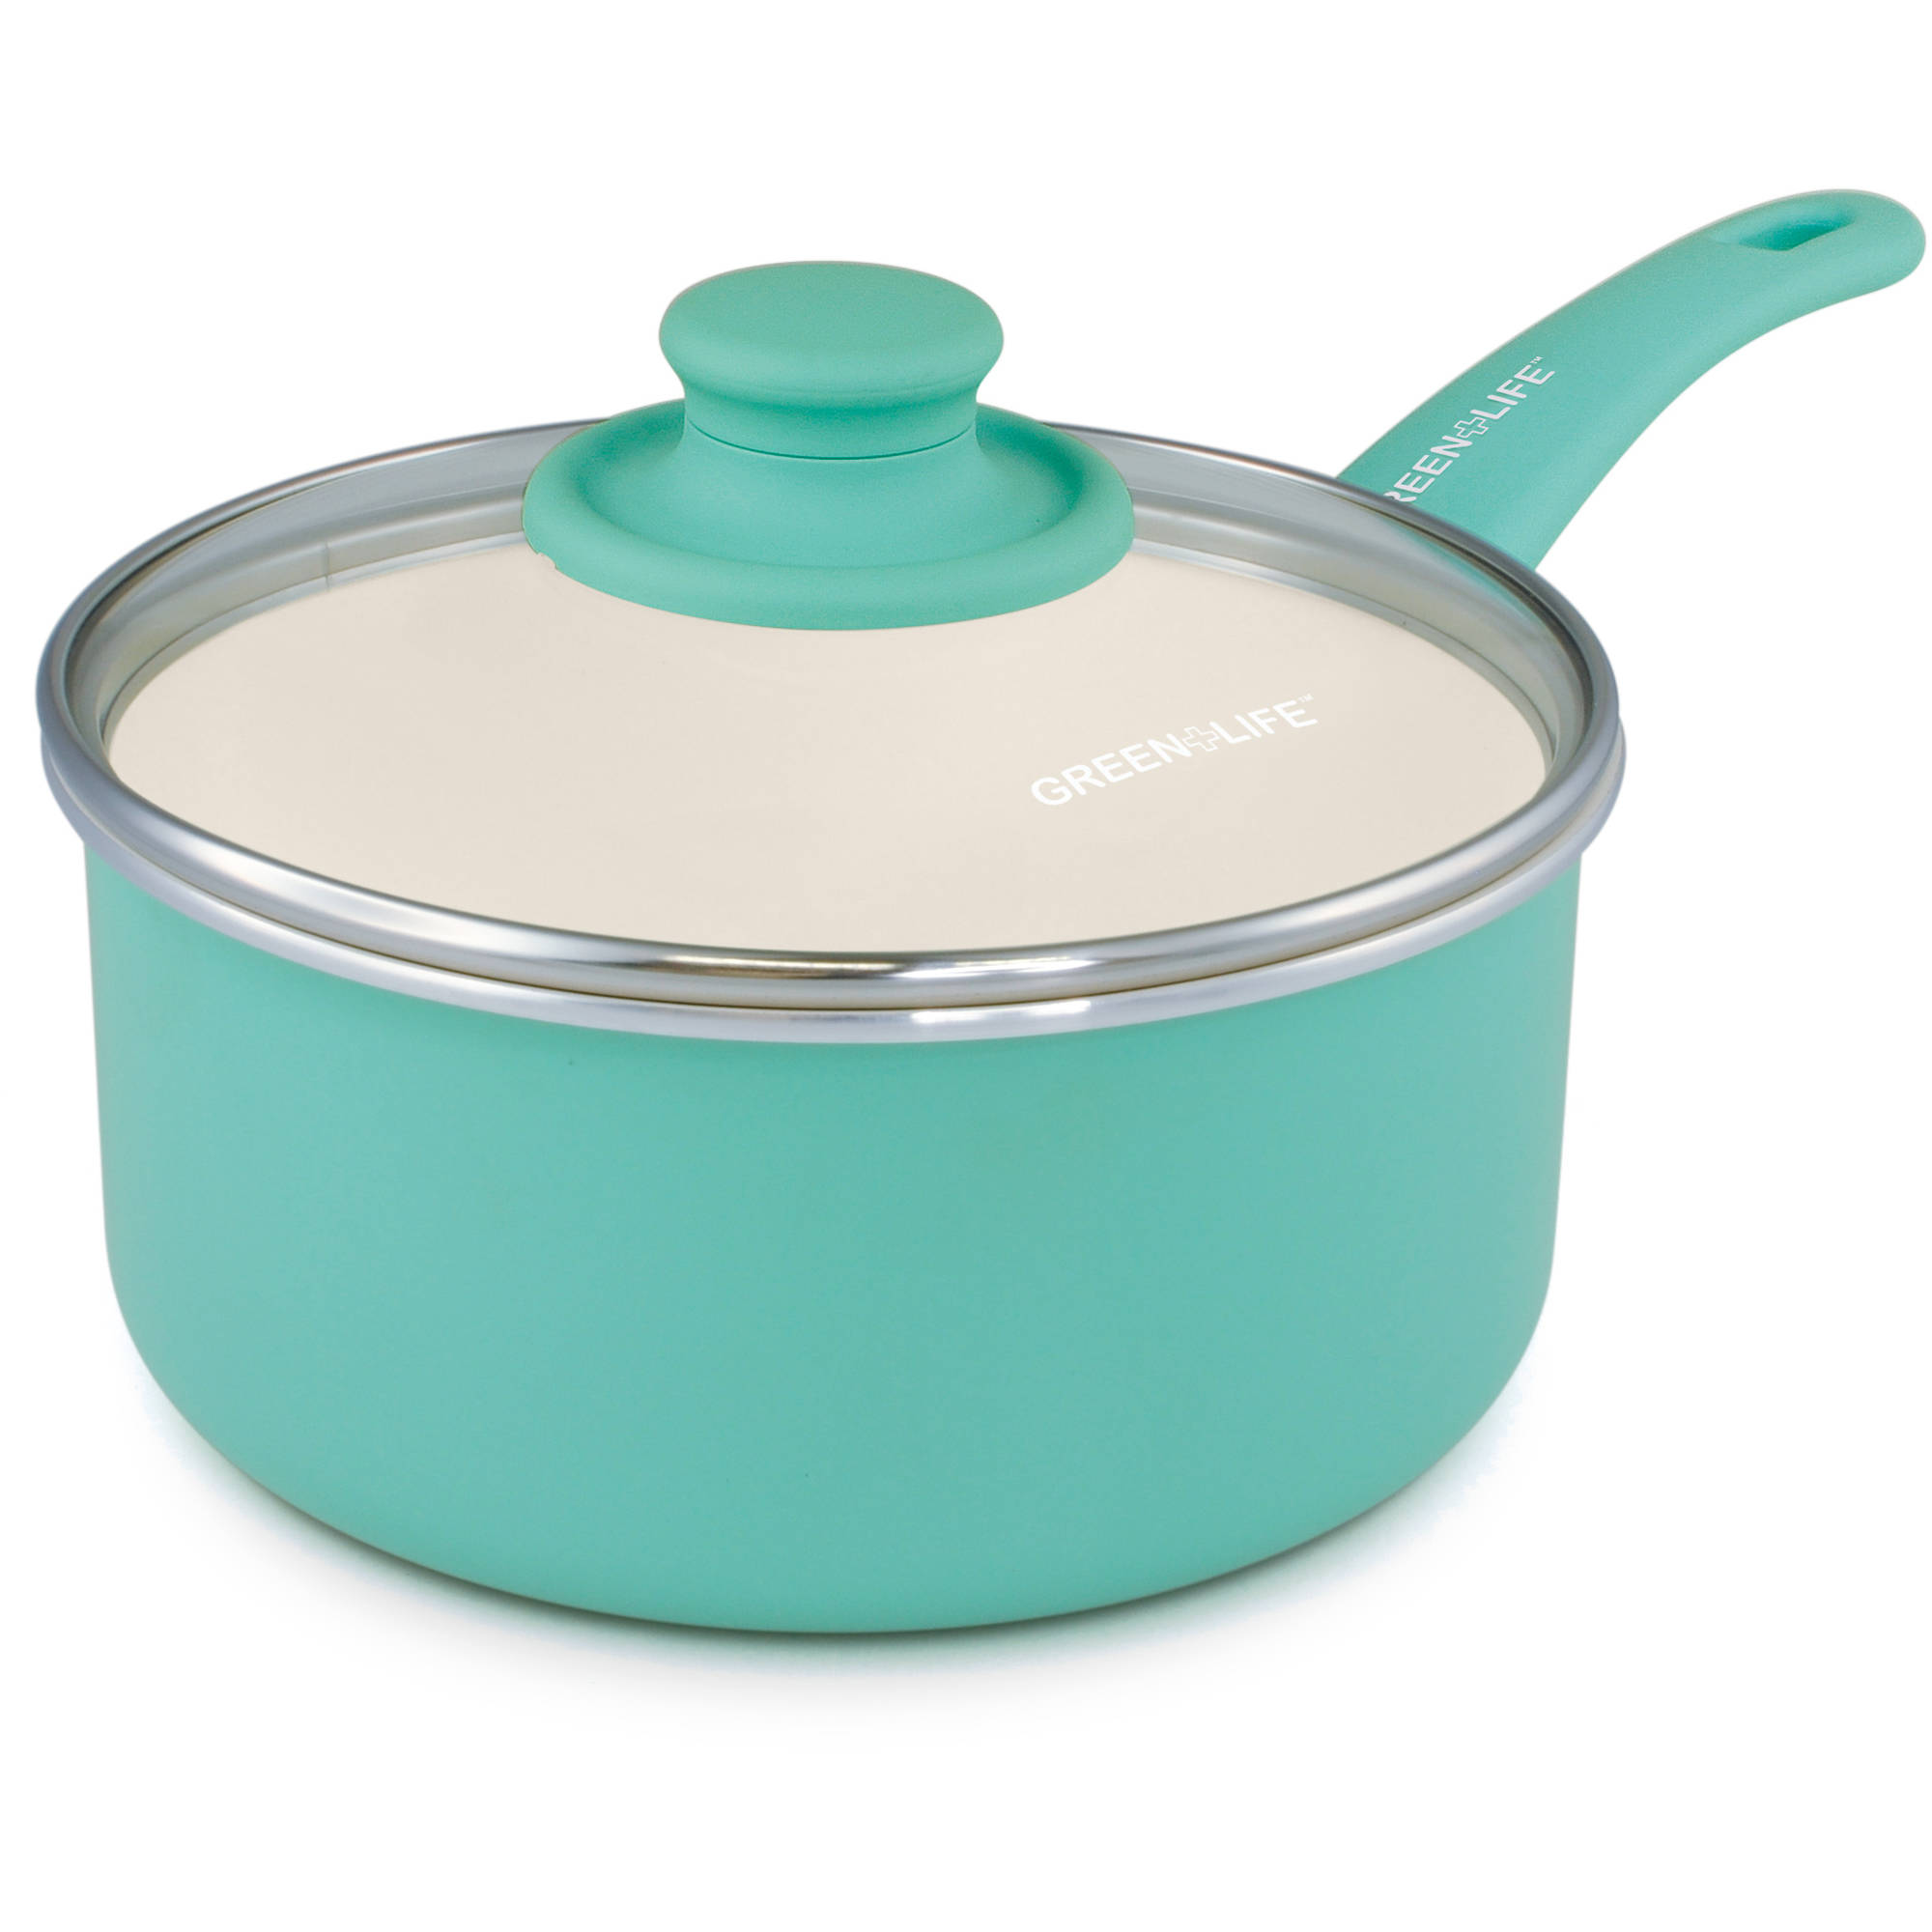 Greenlife Ceramic Non Stick 2qt Covered Sauce Pan